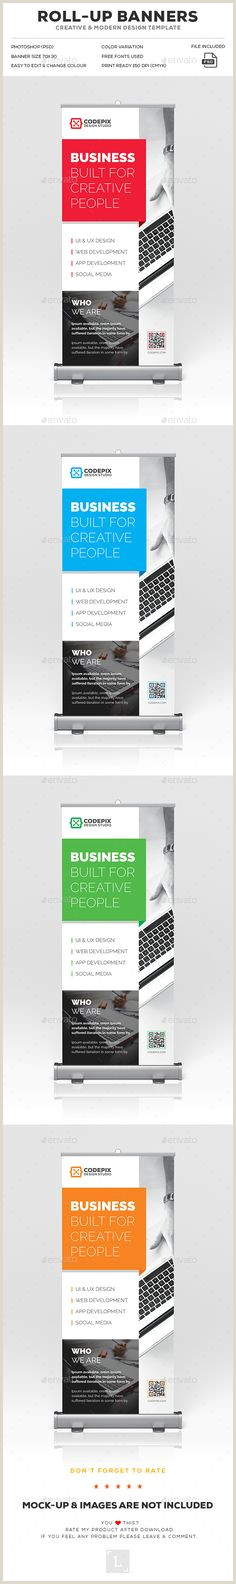 Pop Up Banner Mockup Psd 50 Best Roll Up Banners Images